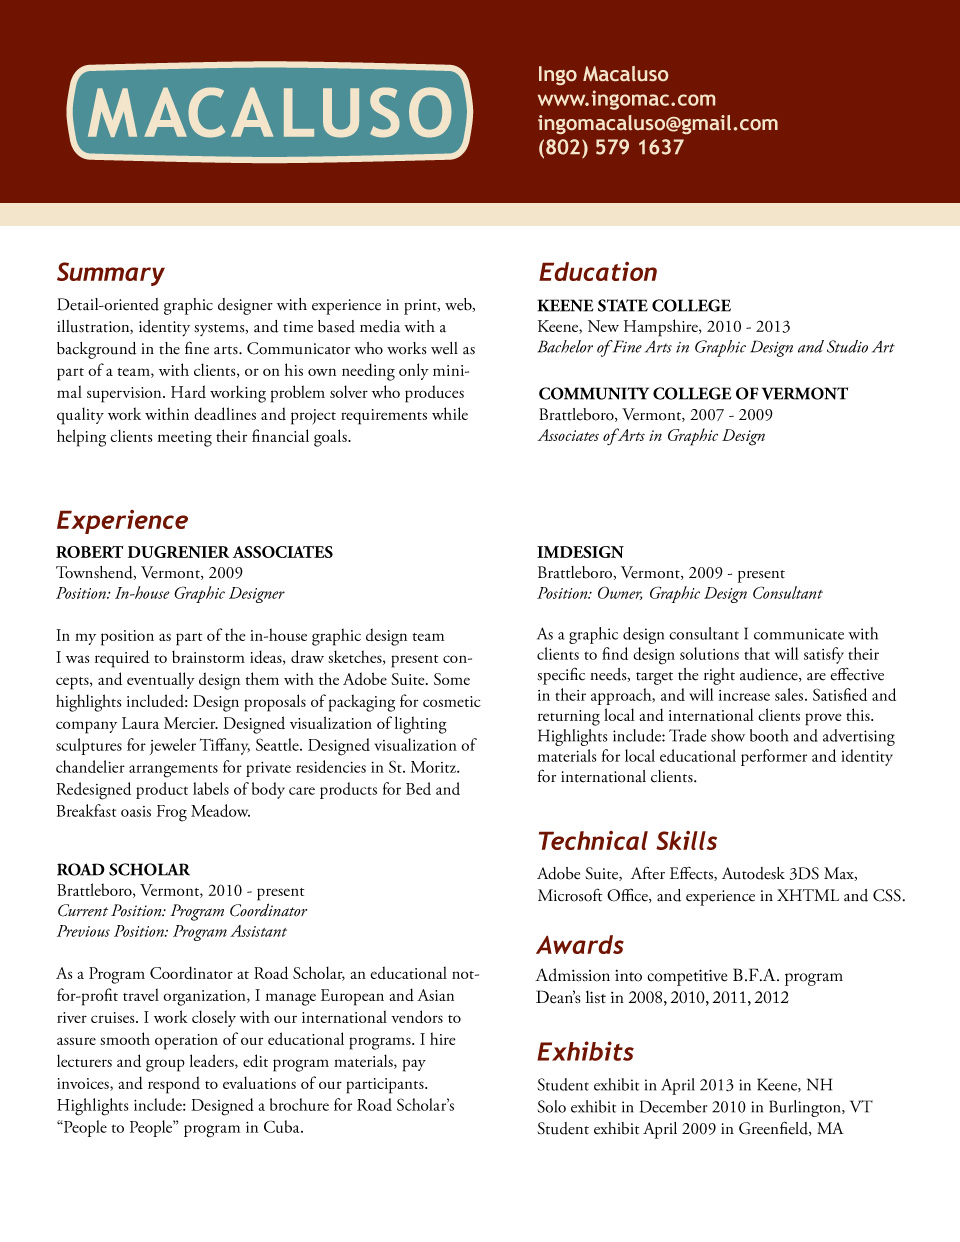 resume of ingo macaluso resume